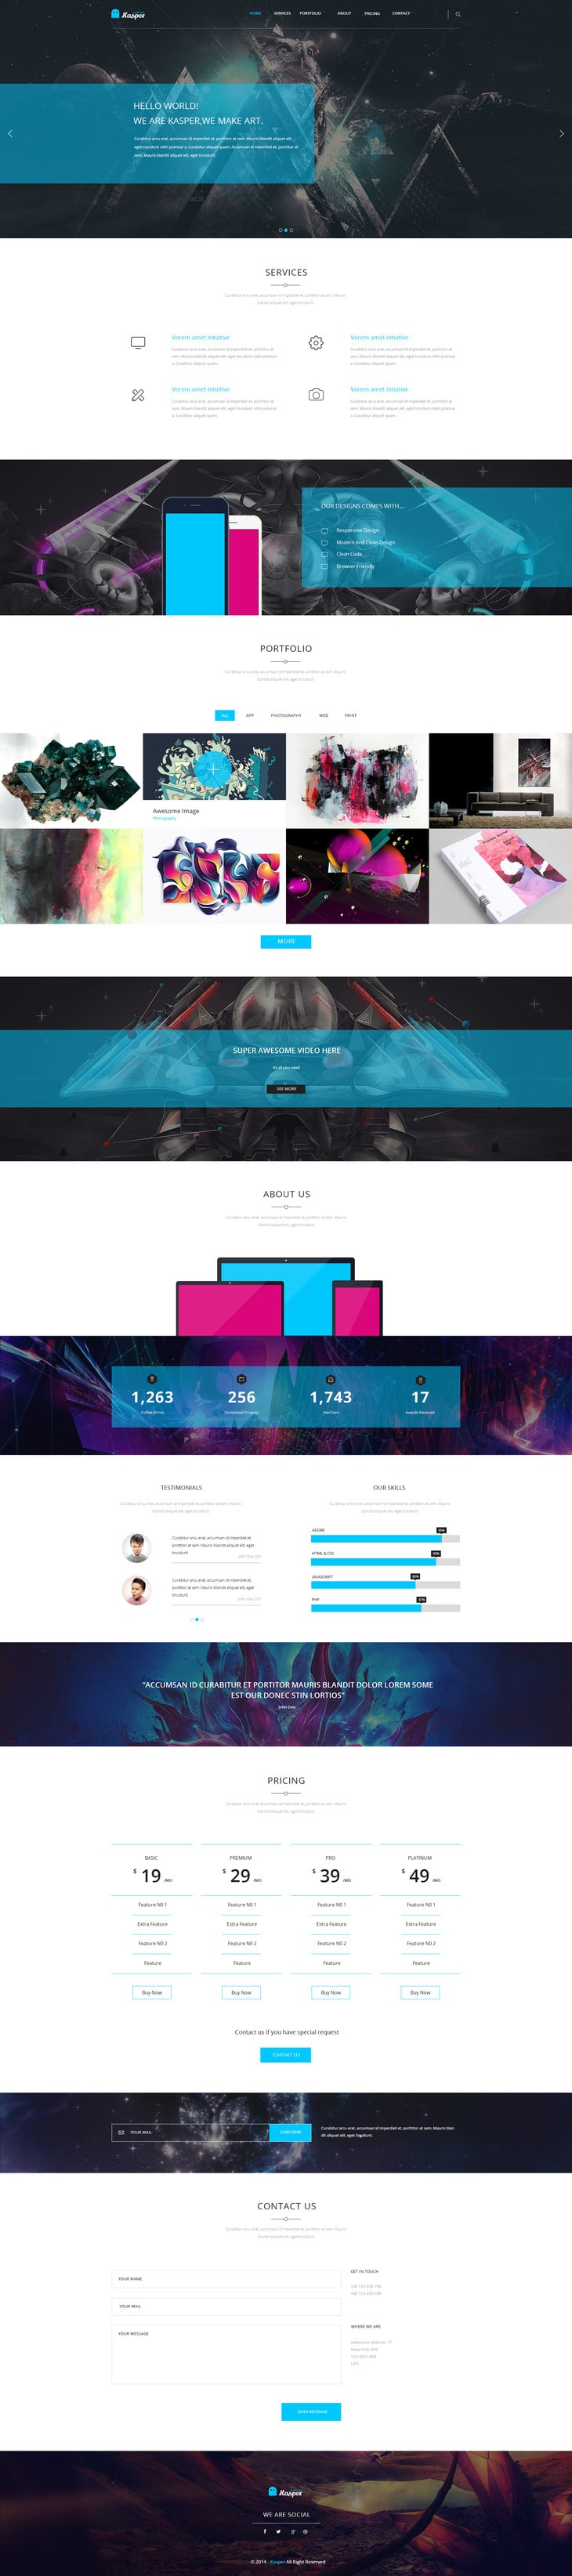 Kasper - One Page Creative PSD Template